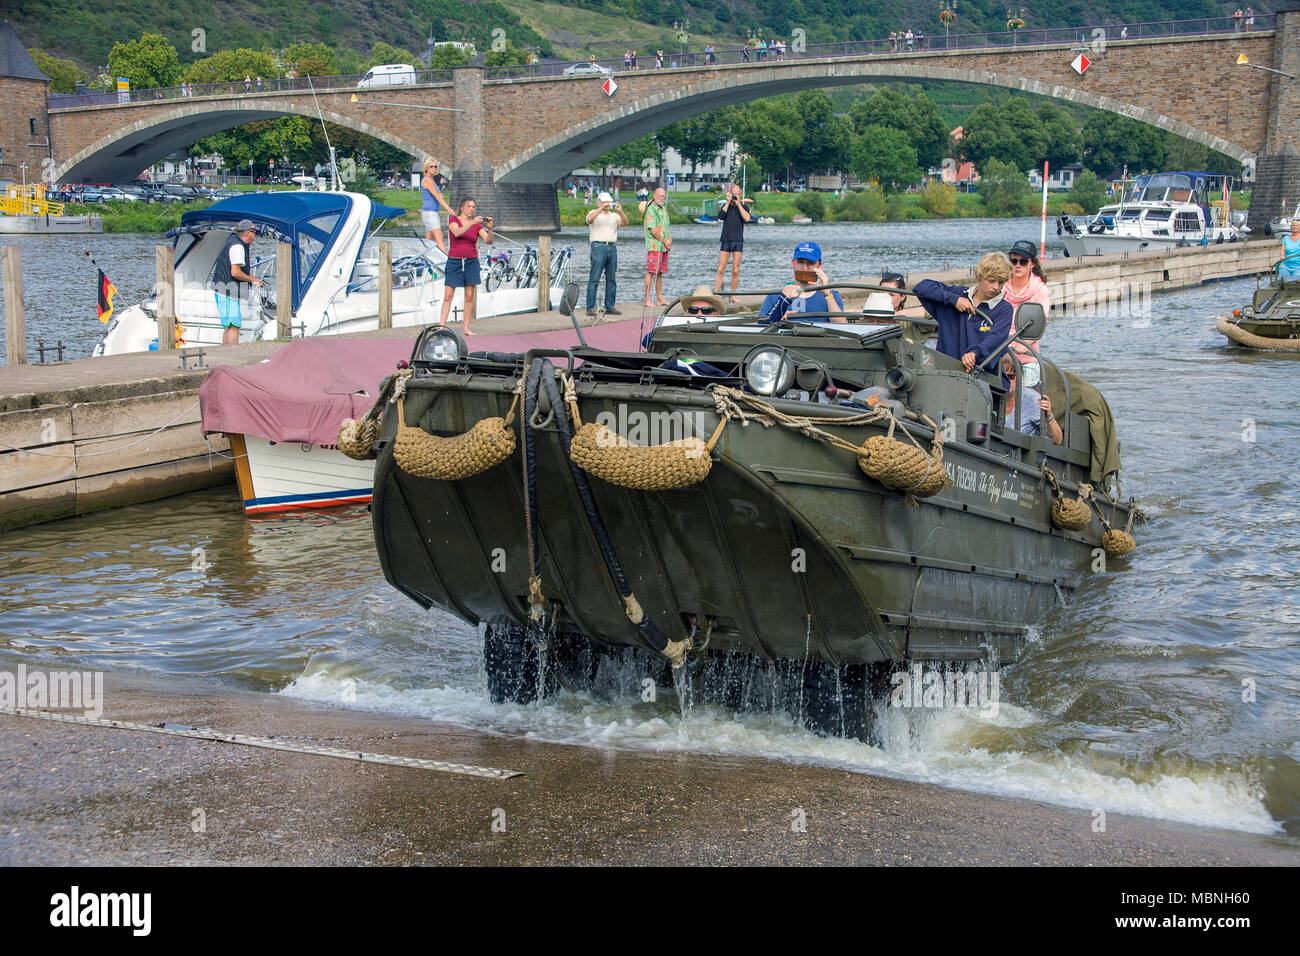 Military amphibious vehicle driving out of water at Moselle river, Cochem, Rhineland-Palatinate, Germany Stock Photo